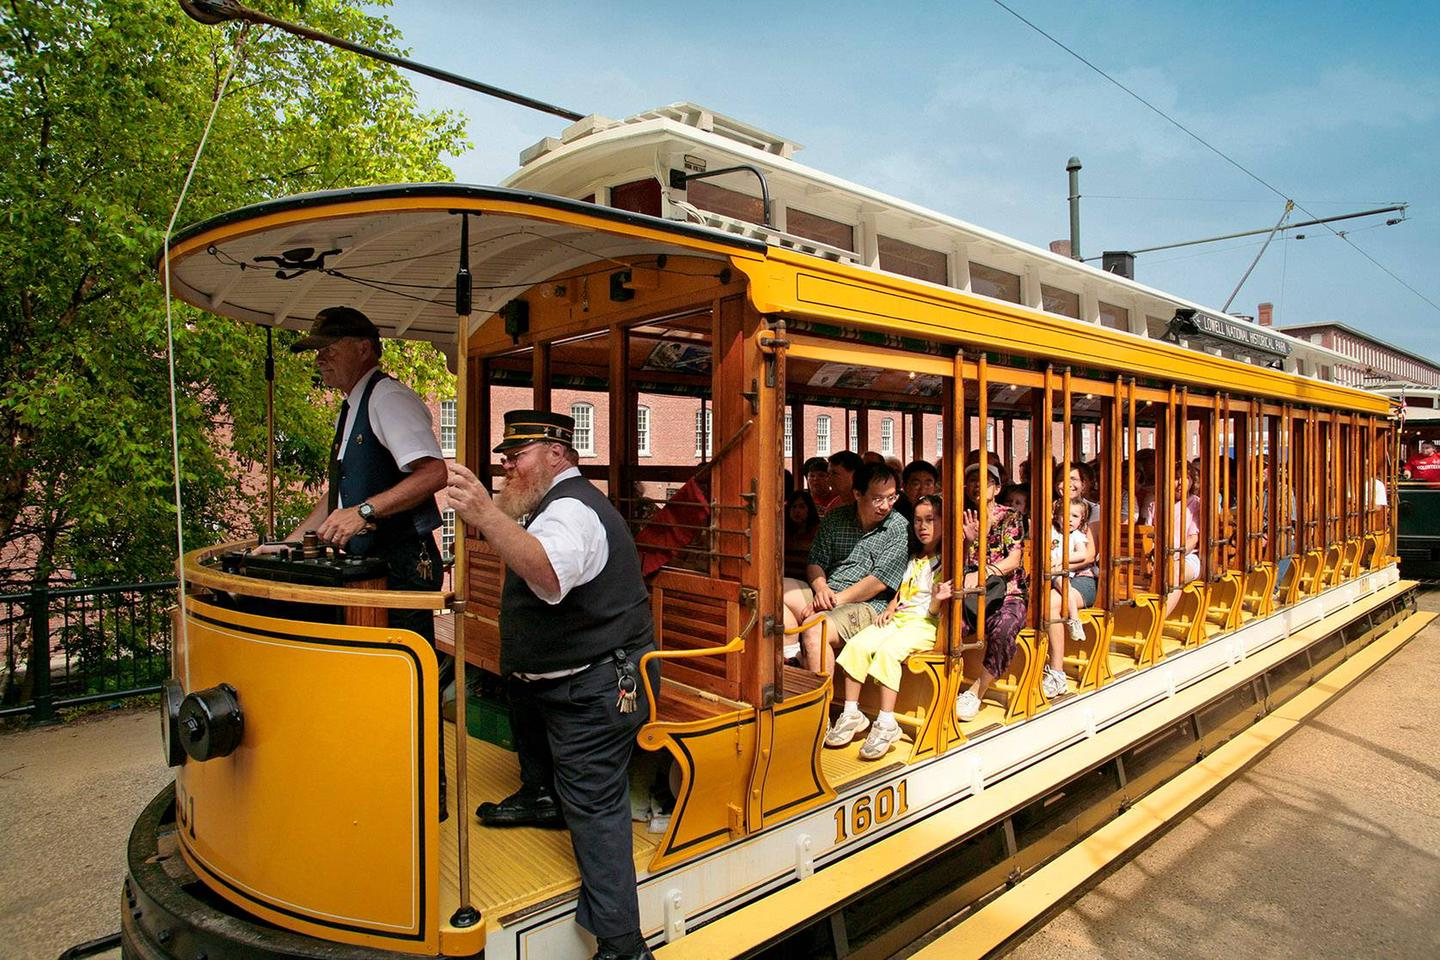 View of trolley with passengersGroup of visitors on a park trolley